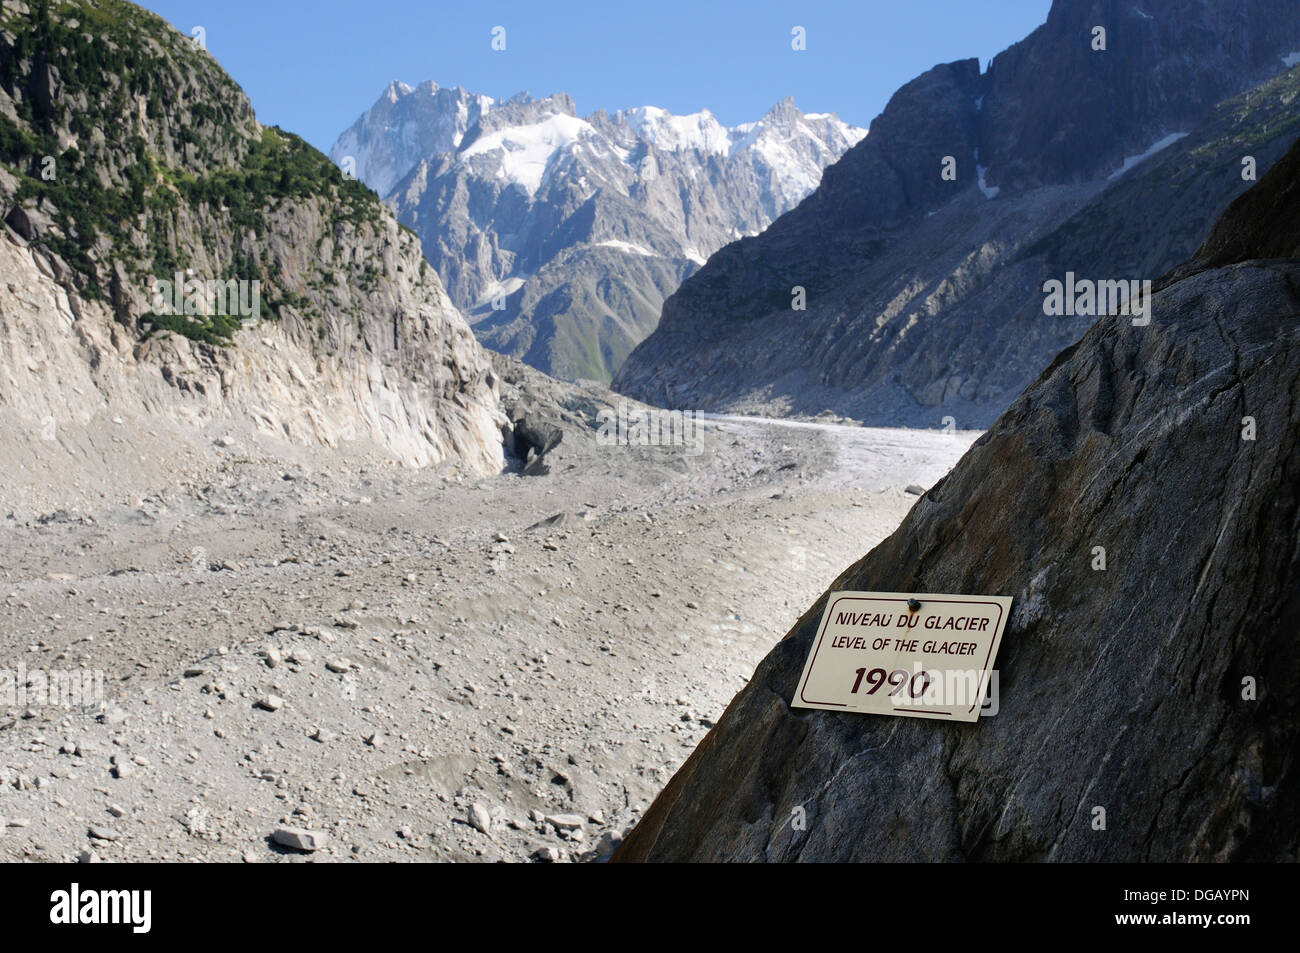 a-sign-showing-the-extent-of-glacial-retreat-recently-the-mer-de-glace-DGAYPN.jpg